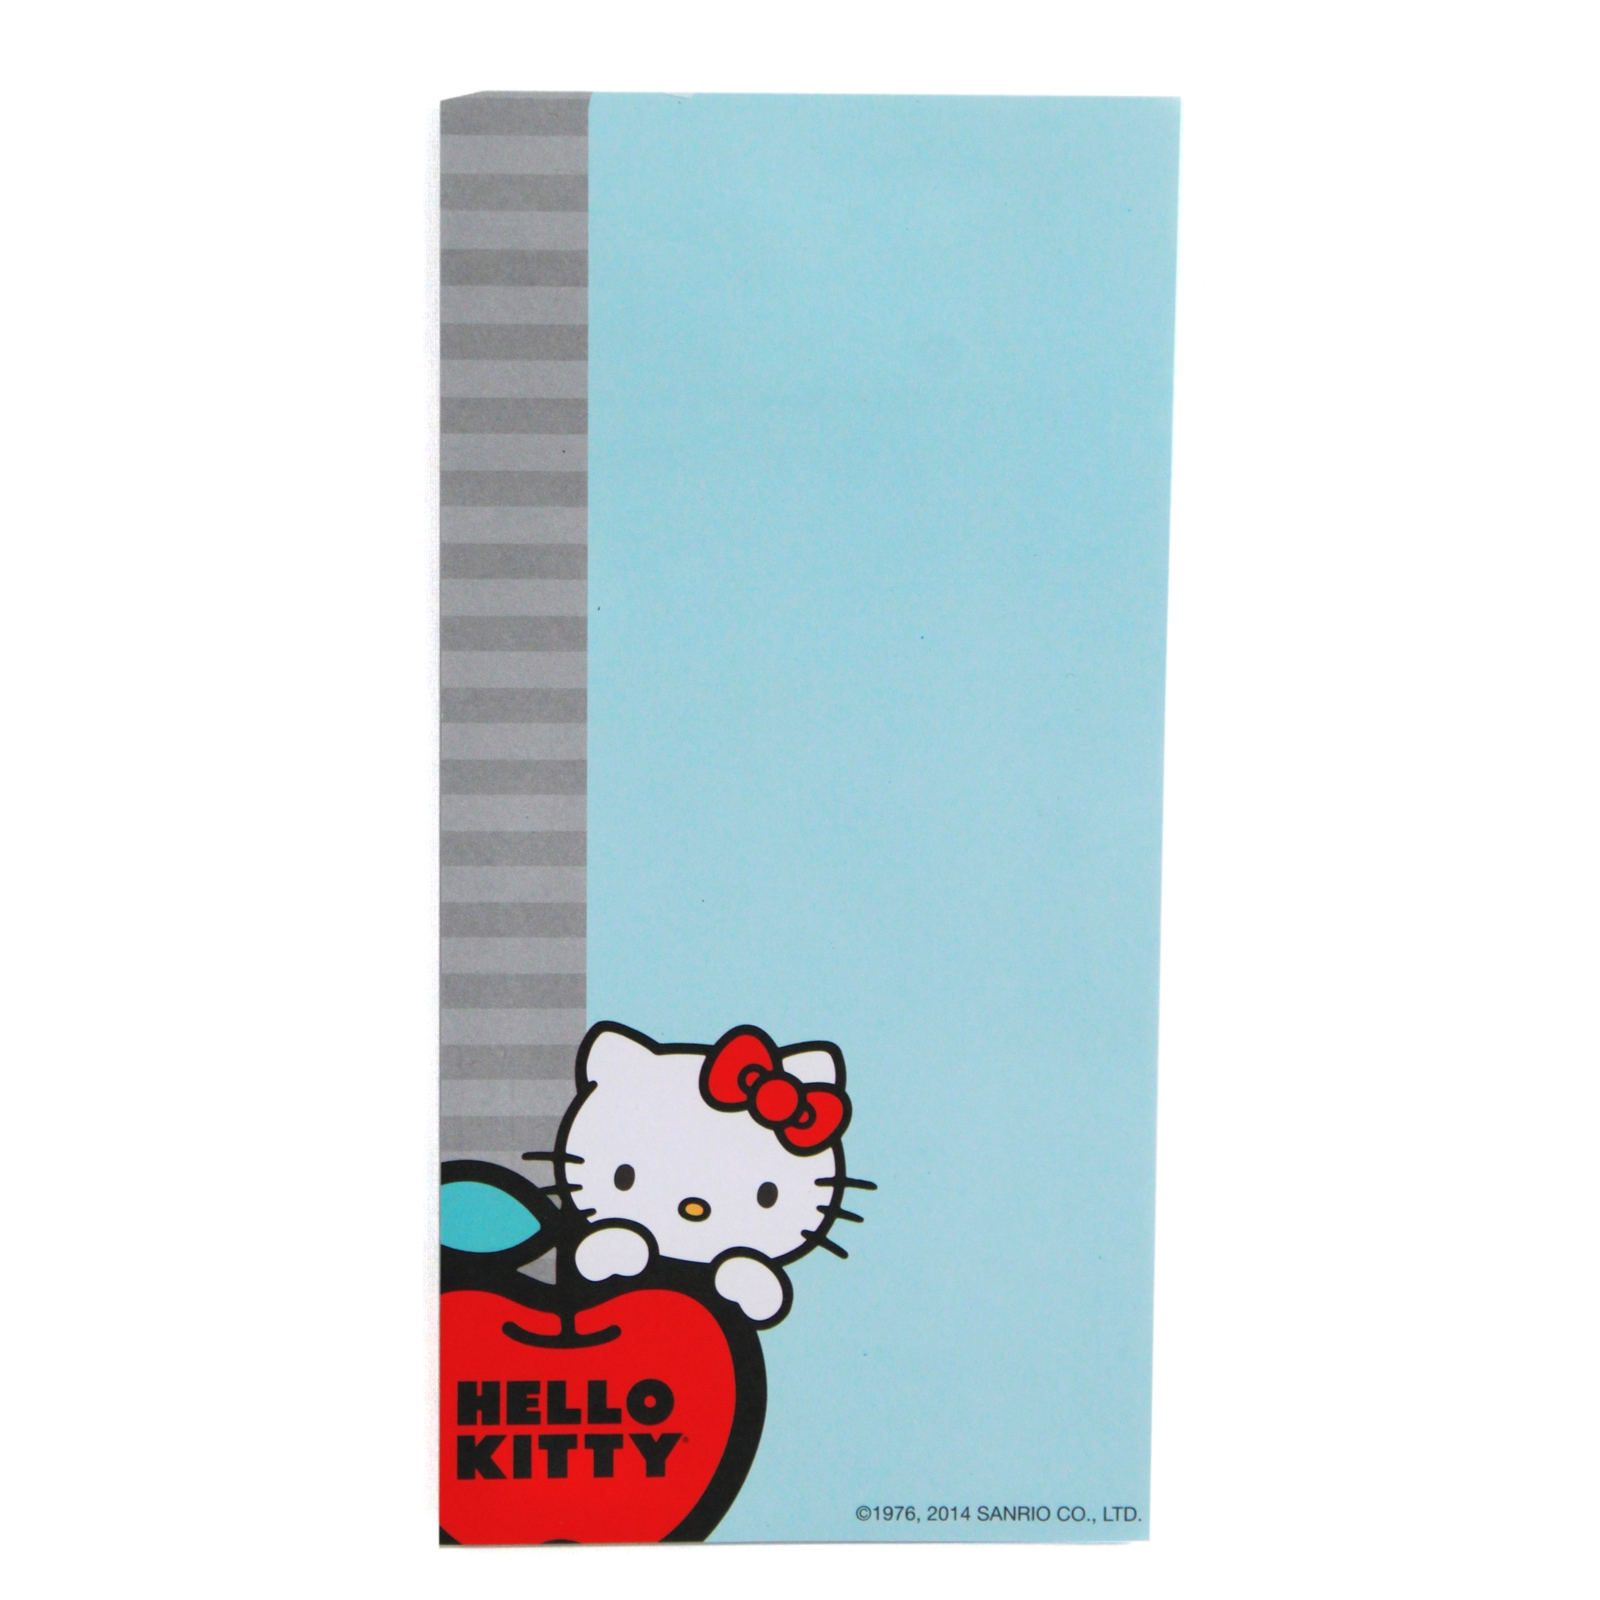 Sanrio Hello Kitty Girls Locker Magnetic List Memo Pad